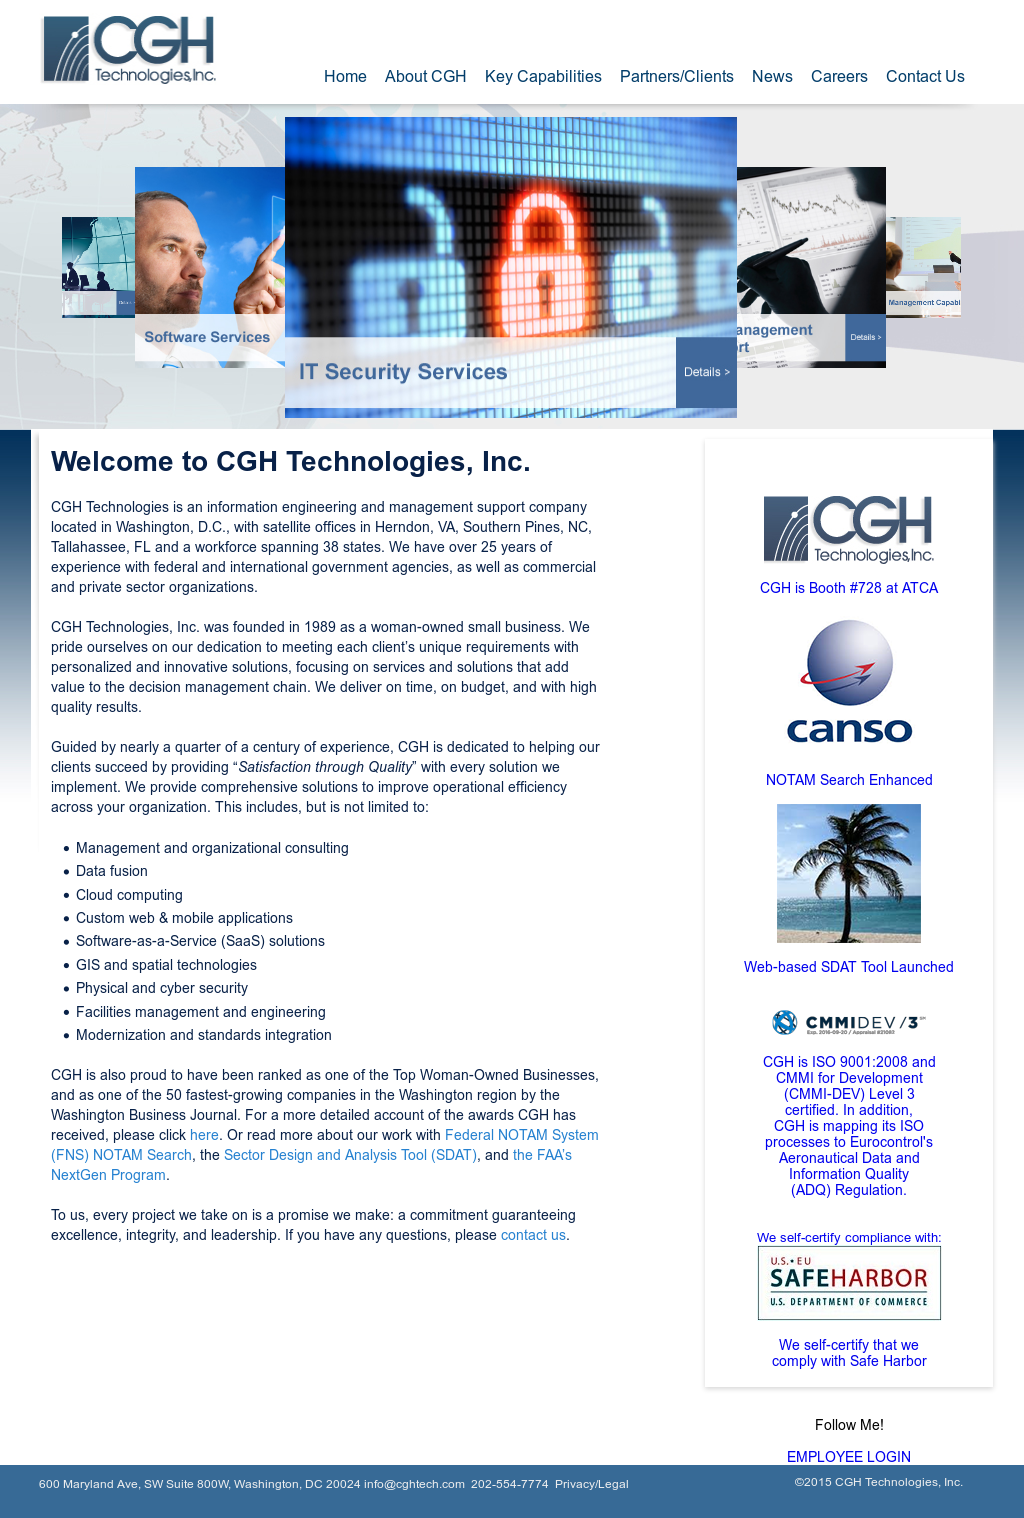 Cgh Technologies S Competitors Revenue Number Of Employees Funding Acquisitions News Owler Company Profile